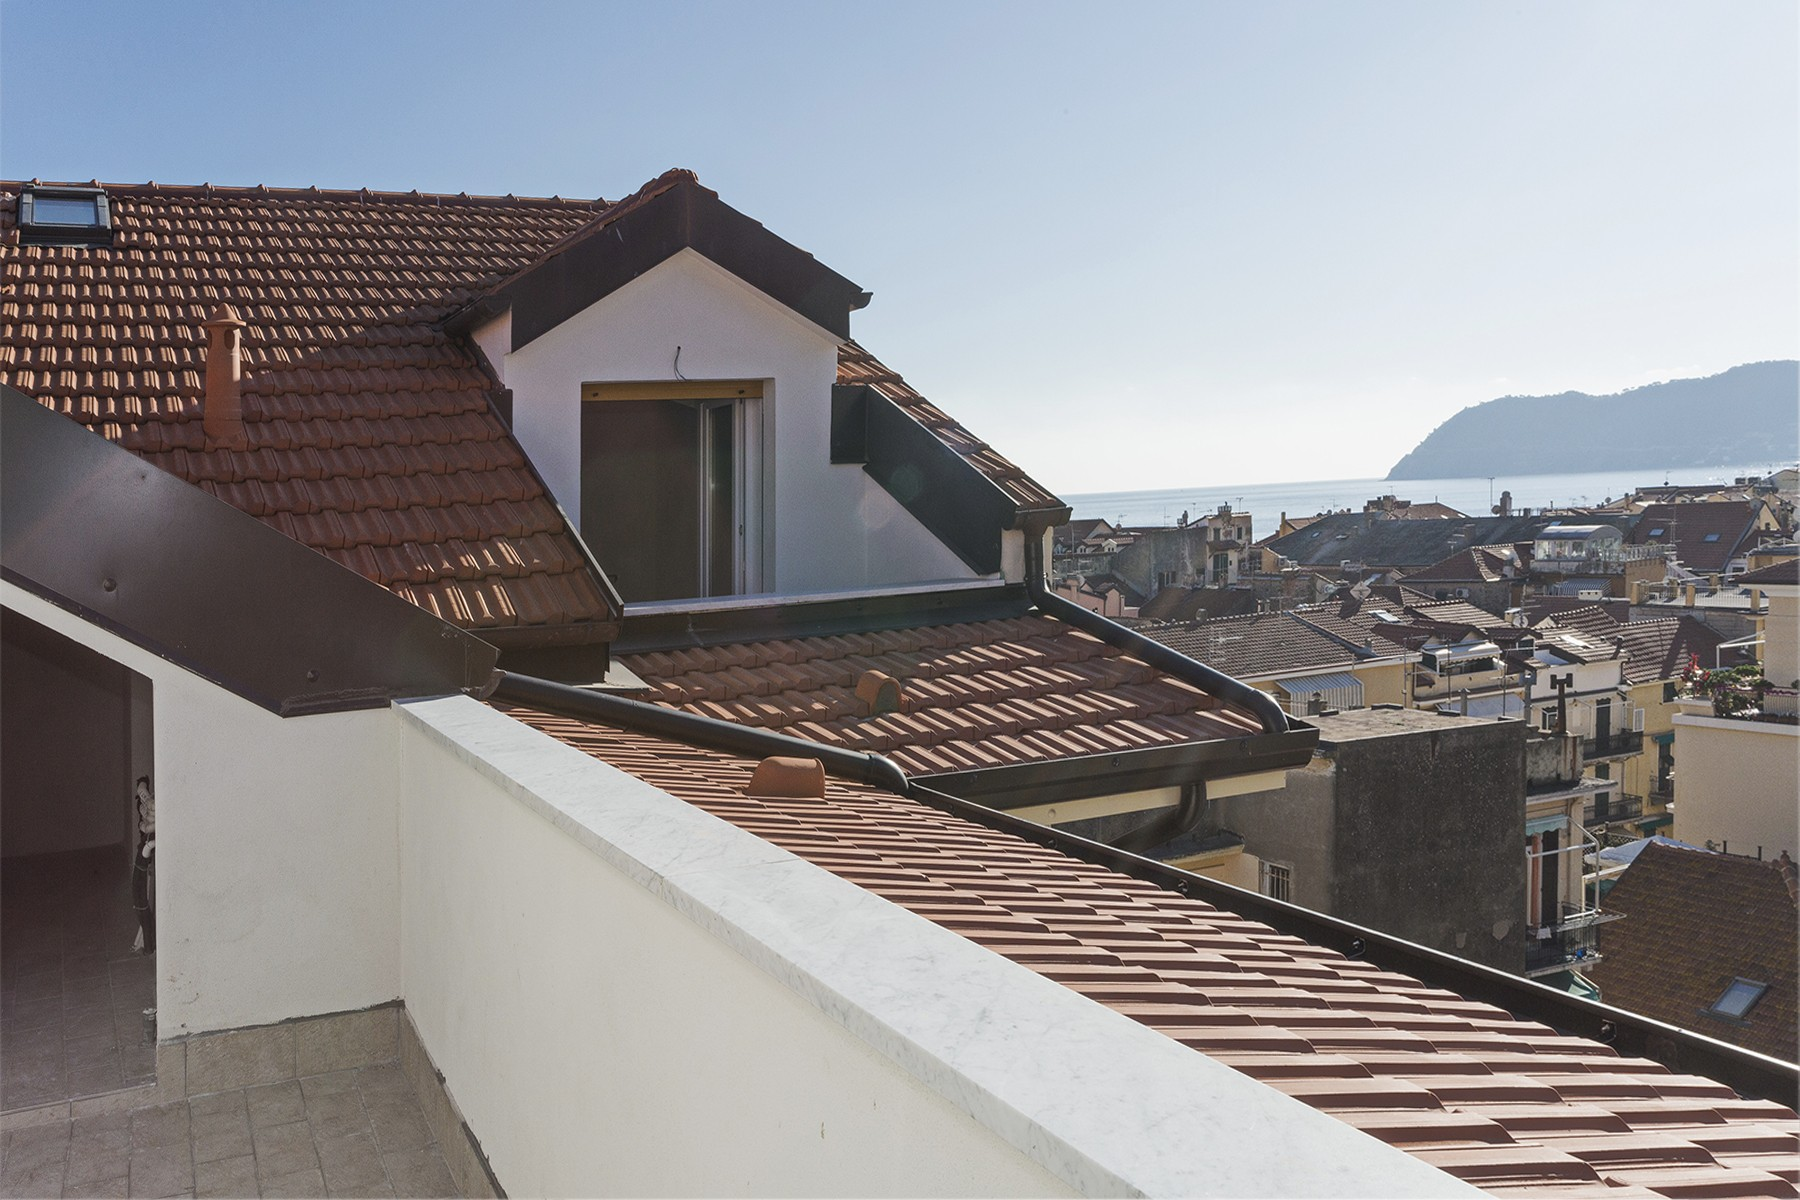 Single Family Home for Sale at See view Penthouse in Alassio Via Mazzini 38 Alassio, Savona 17021 Italy